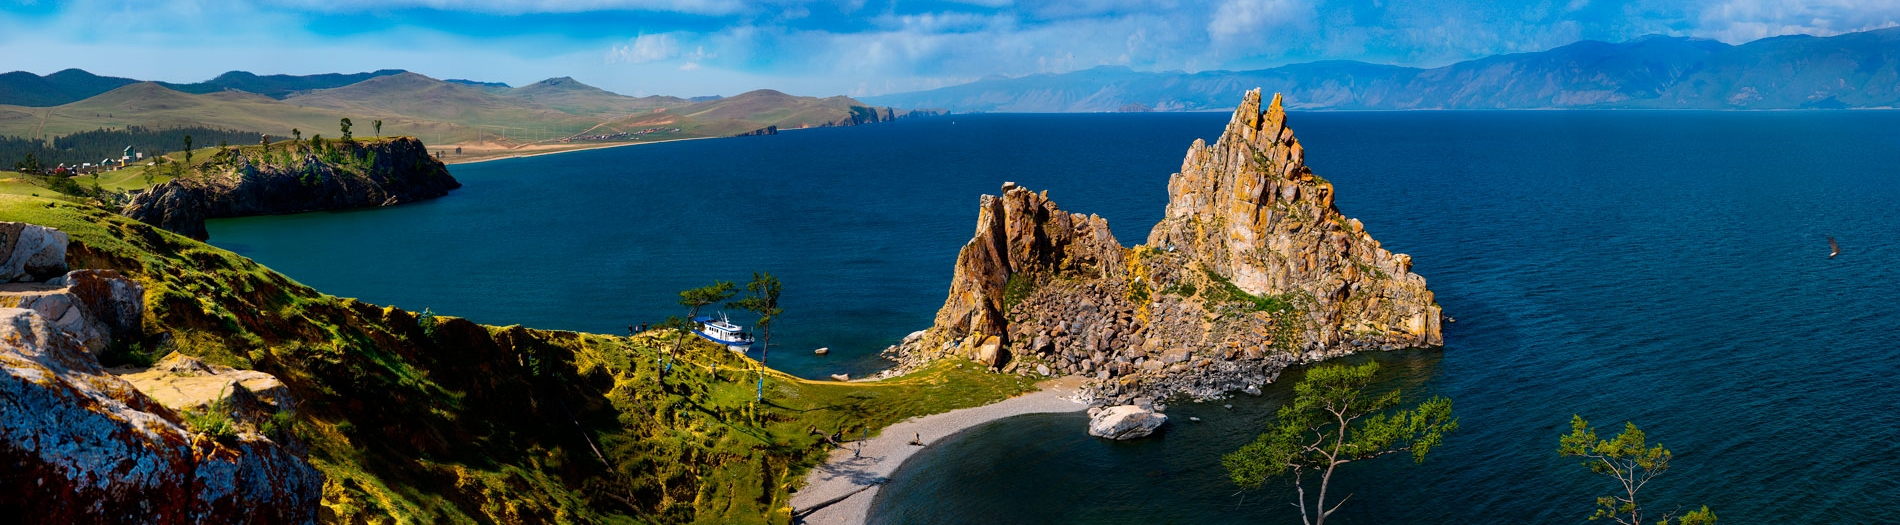 Day of Baikal, or why the lake needs a holiday